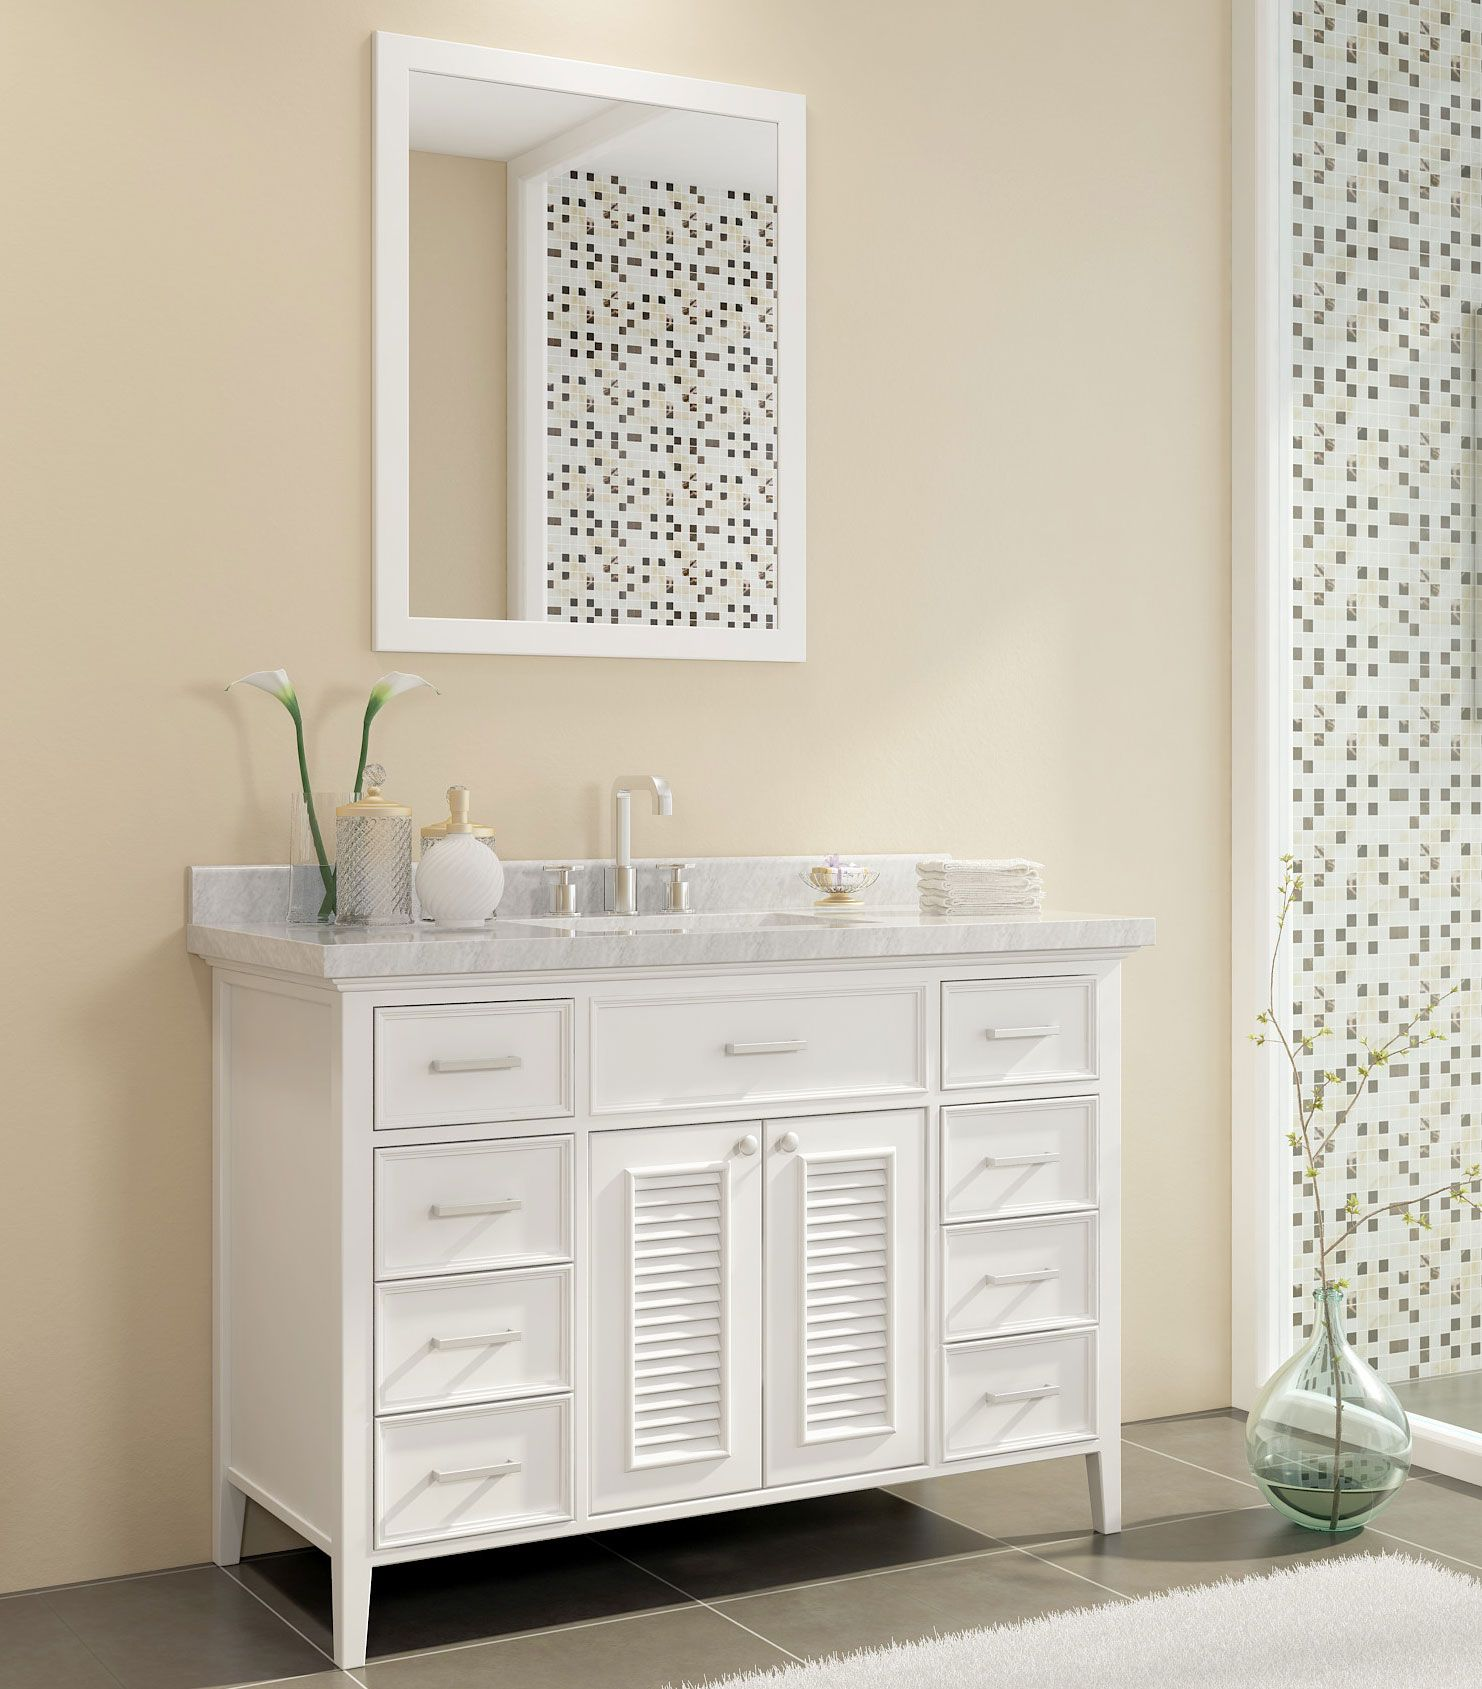 Ace Kensington 49 Inch Single Sink Bathroom Vanity Set In White Finish